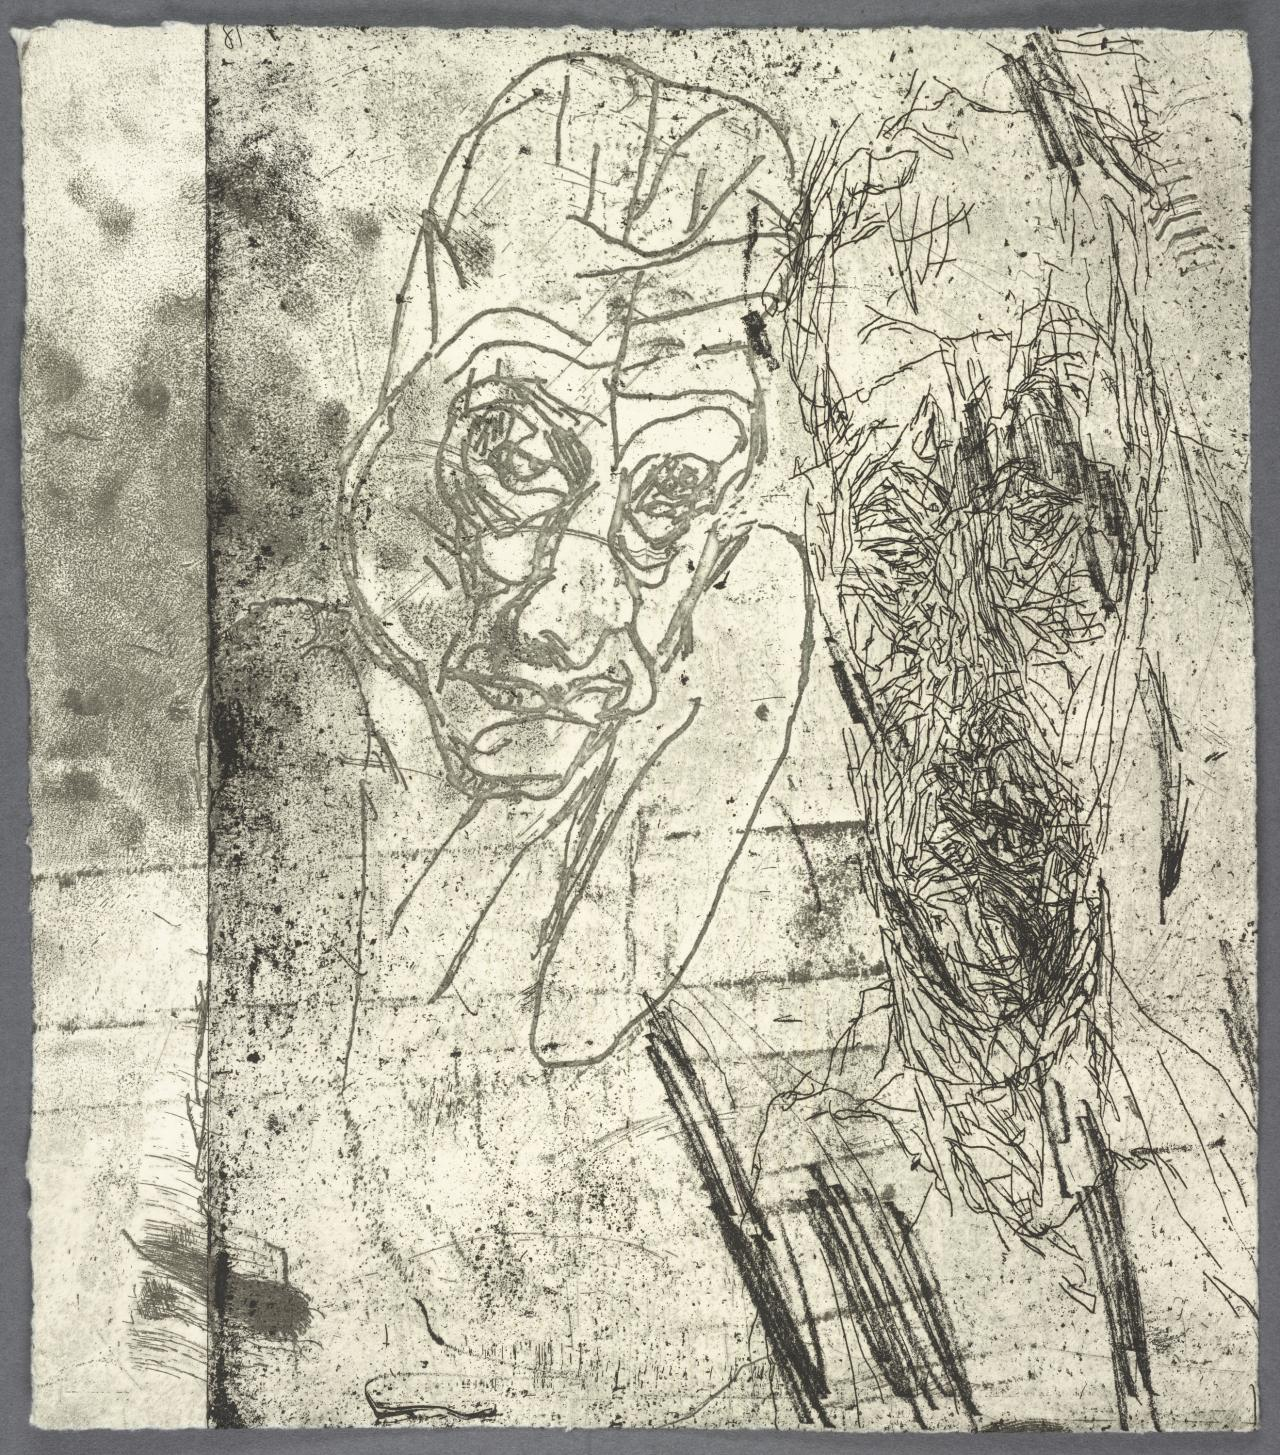 (ALPHABET/HAEMORRHAGE) Black Box of 100 Self Portrait Etchings 2